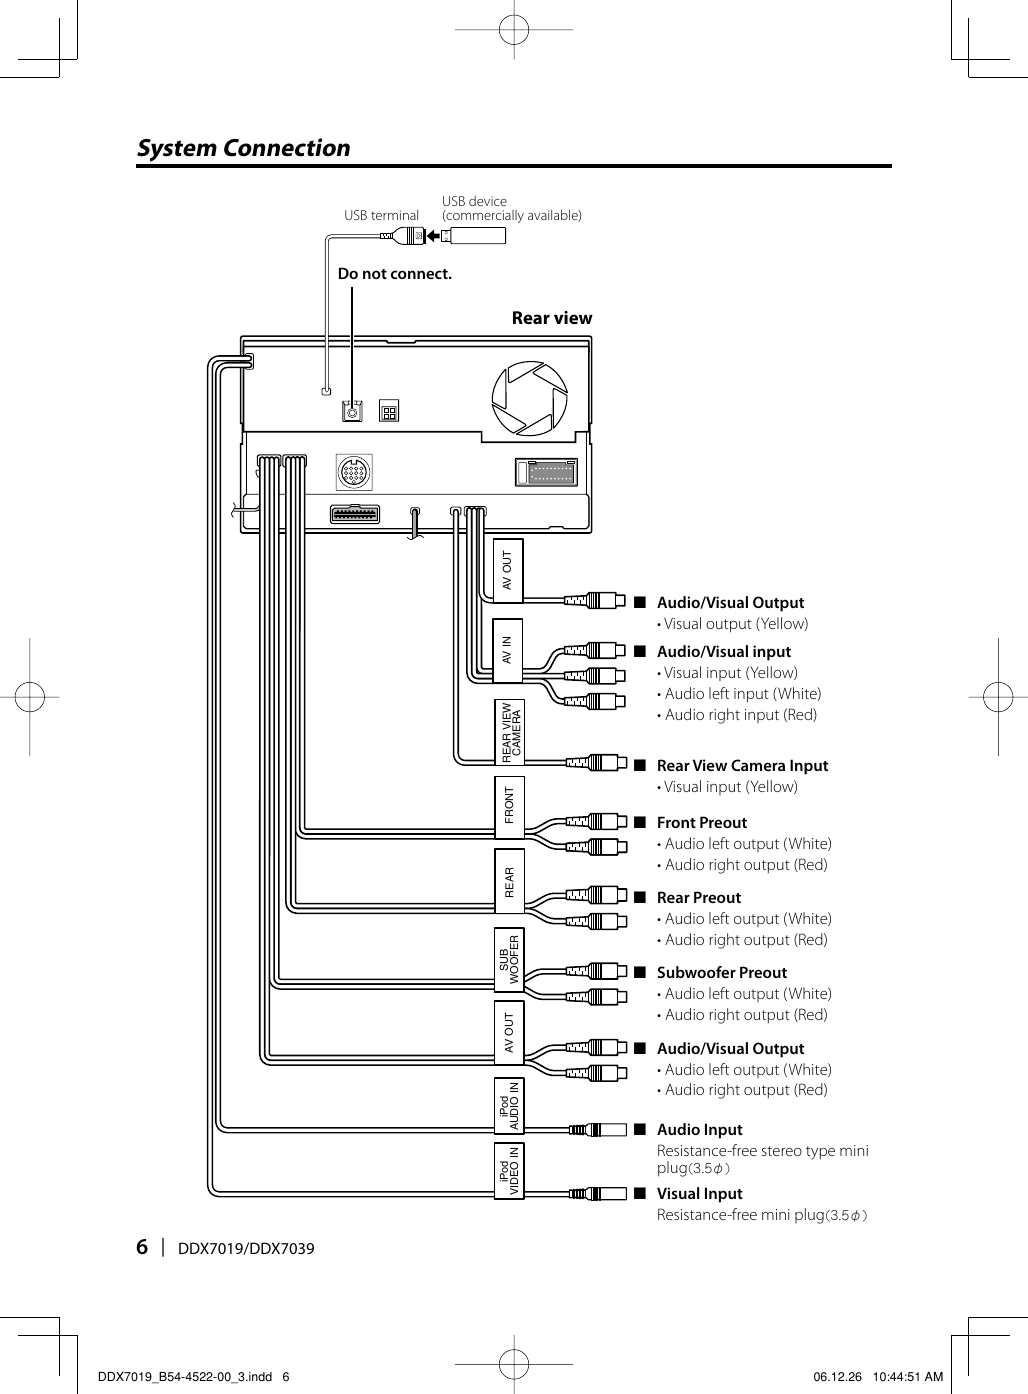 Kenwood Ddx7019 Wiring Diagram Explained Diagrams Dnx7140 B54 4522 00 3 If Not Then Manualsddx7019 Install